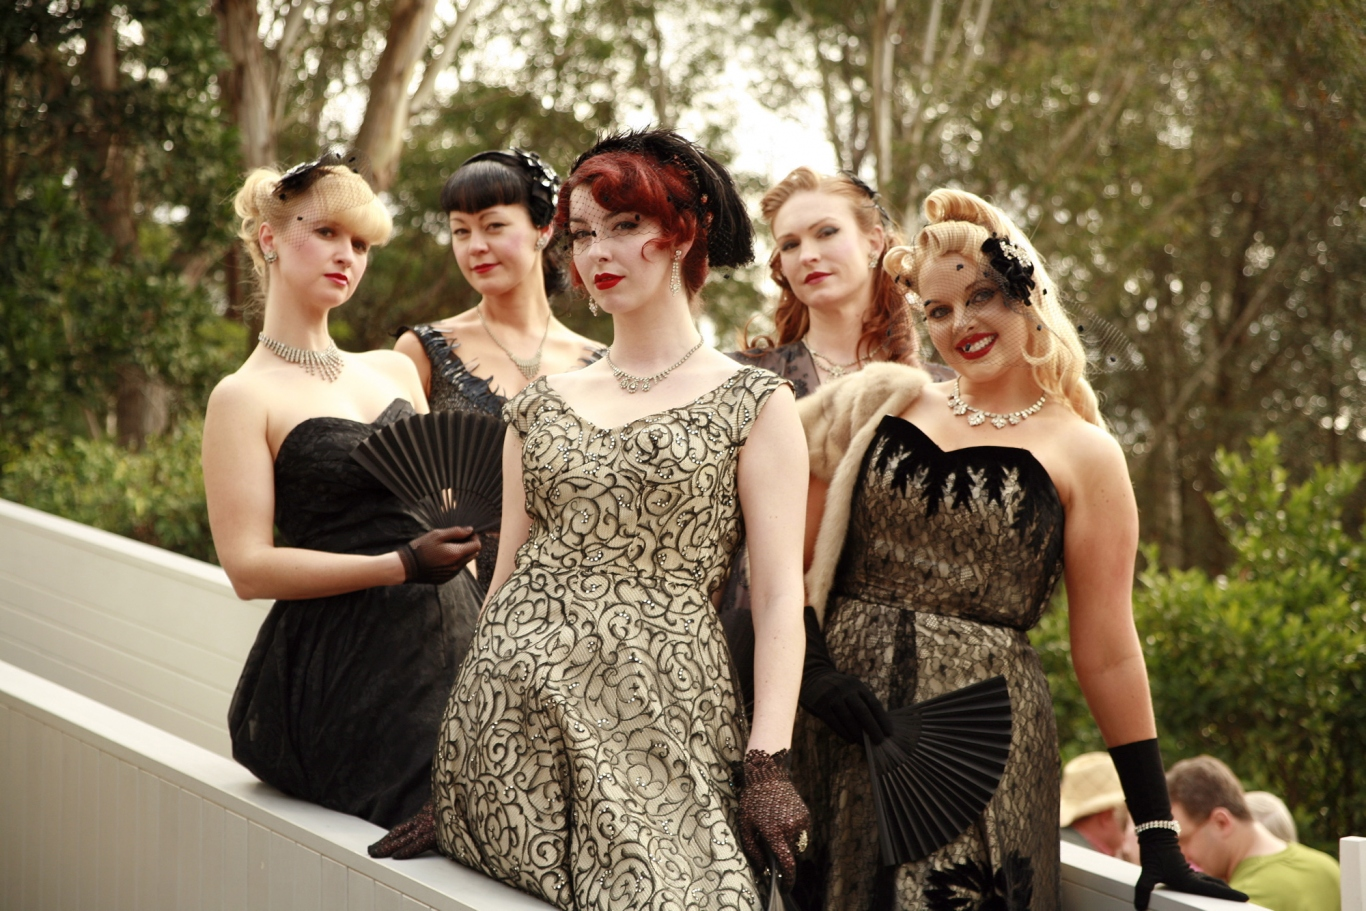 Dressed up in vintage frocks for the Fifties Fair